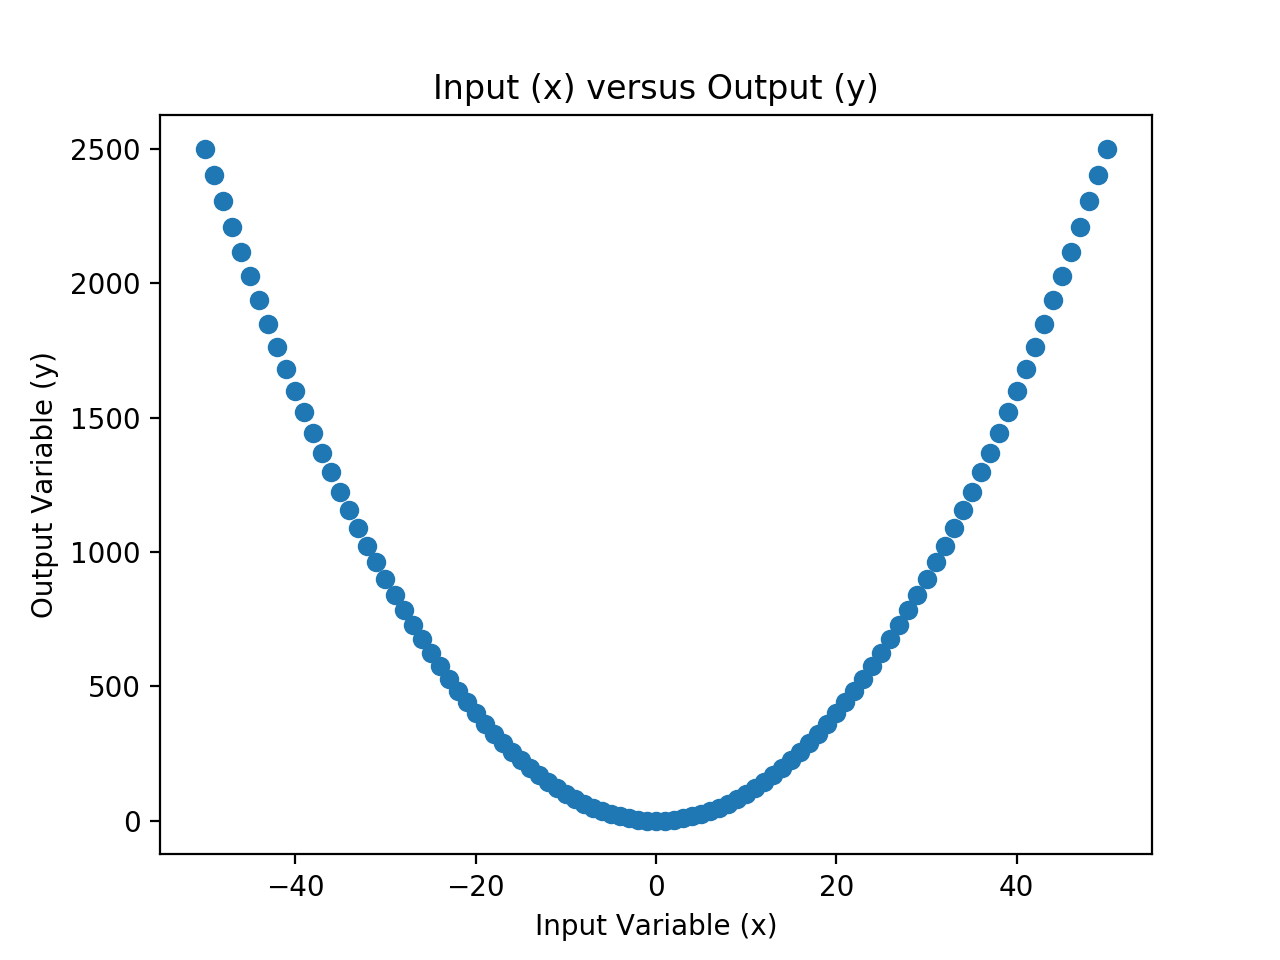 Scatter Plot of Input and Output Values for the Chosen Mapping Function